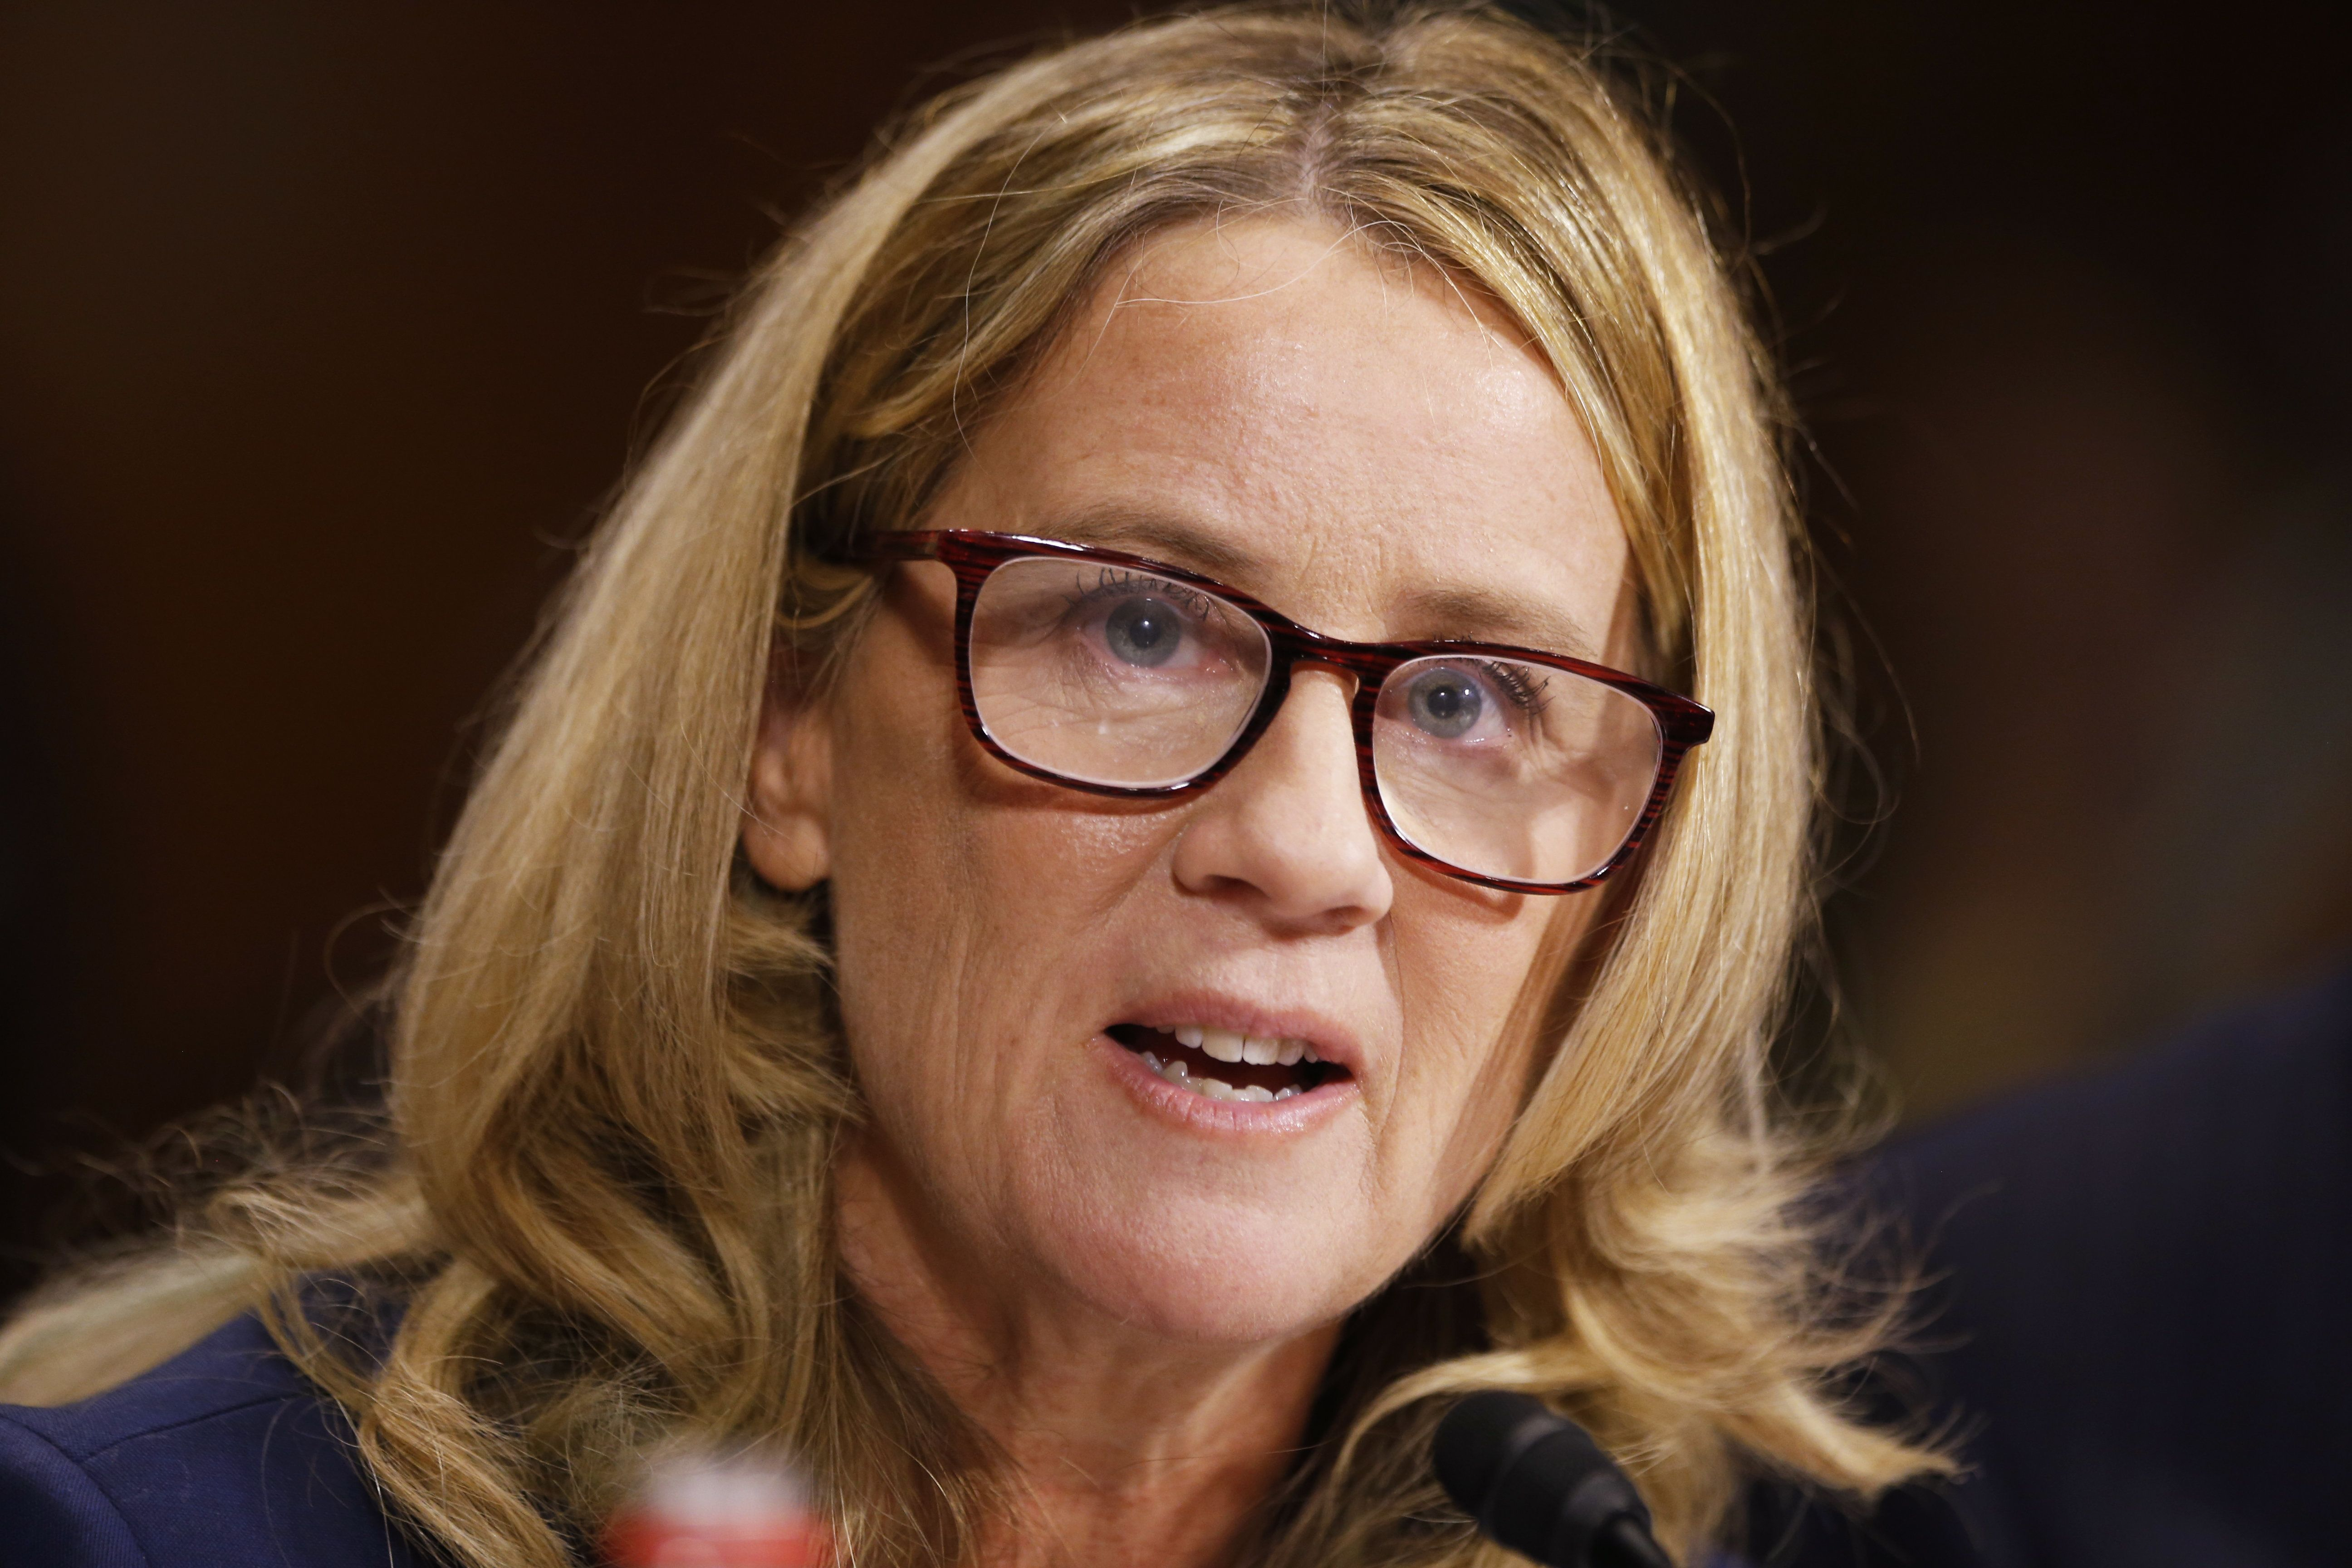 The FBI has so far not interviewed Christine Blasey Ford about her allegations against Brett Kavanaugh.